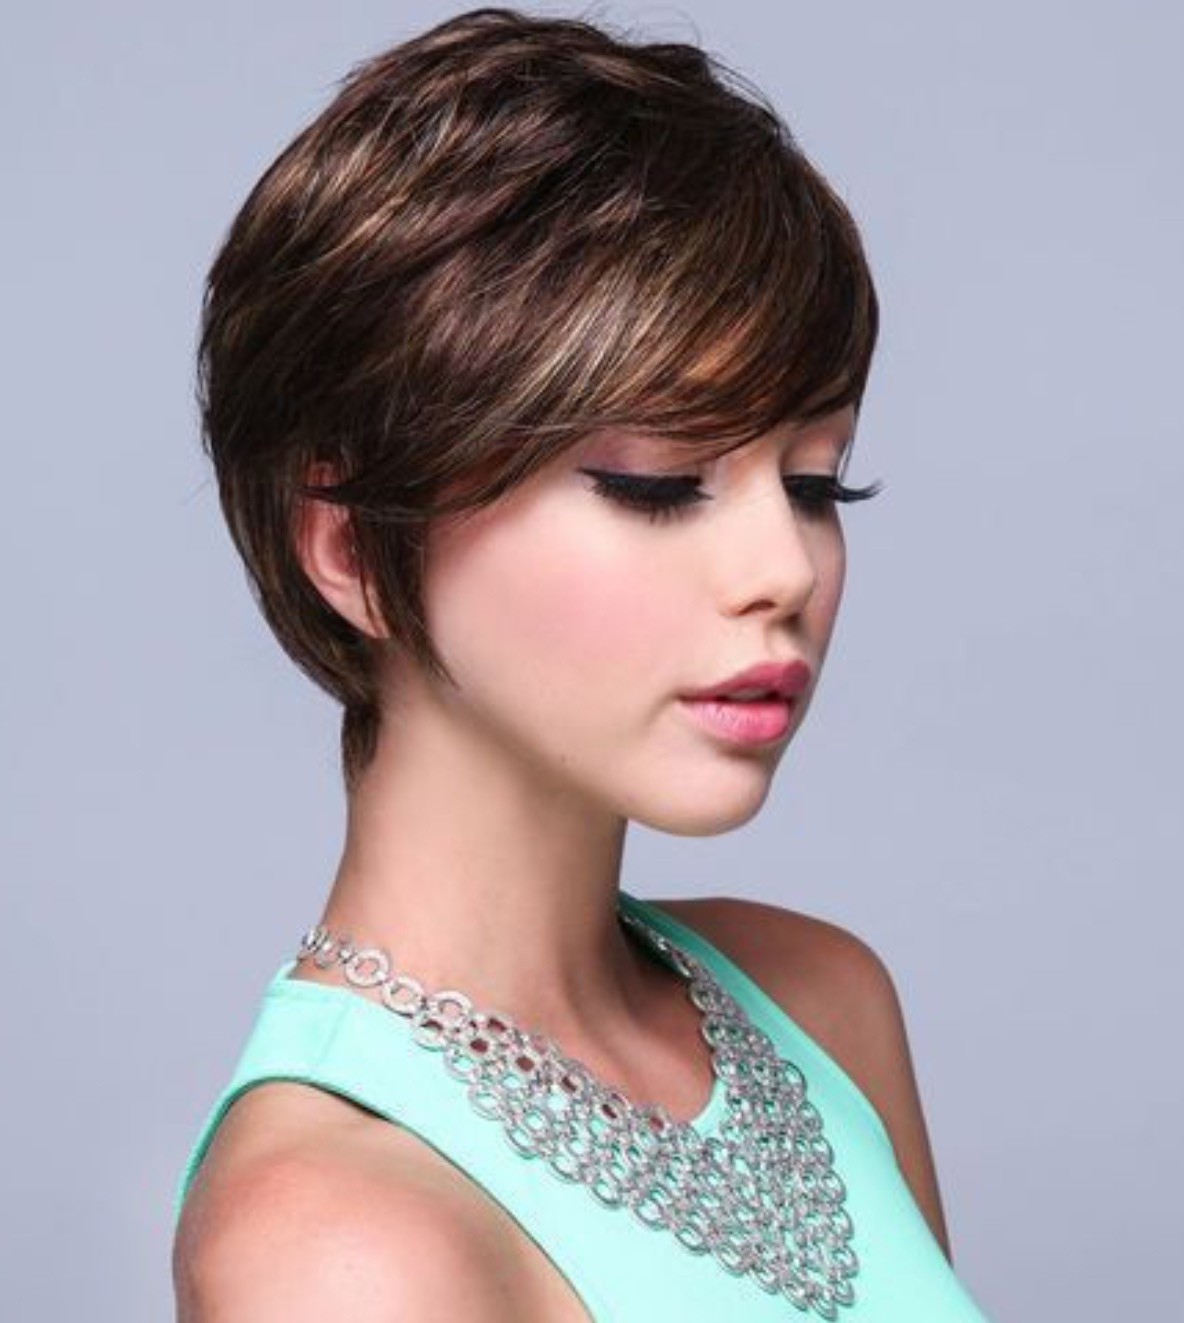 Very Cute Long Pixie Cut | Things That Catch My Eye | Pinterest Intended For Best And Newest Long Pixie Hairstyles For Women (View 10 of 15)